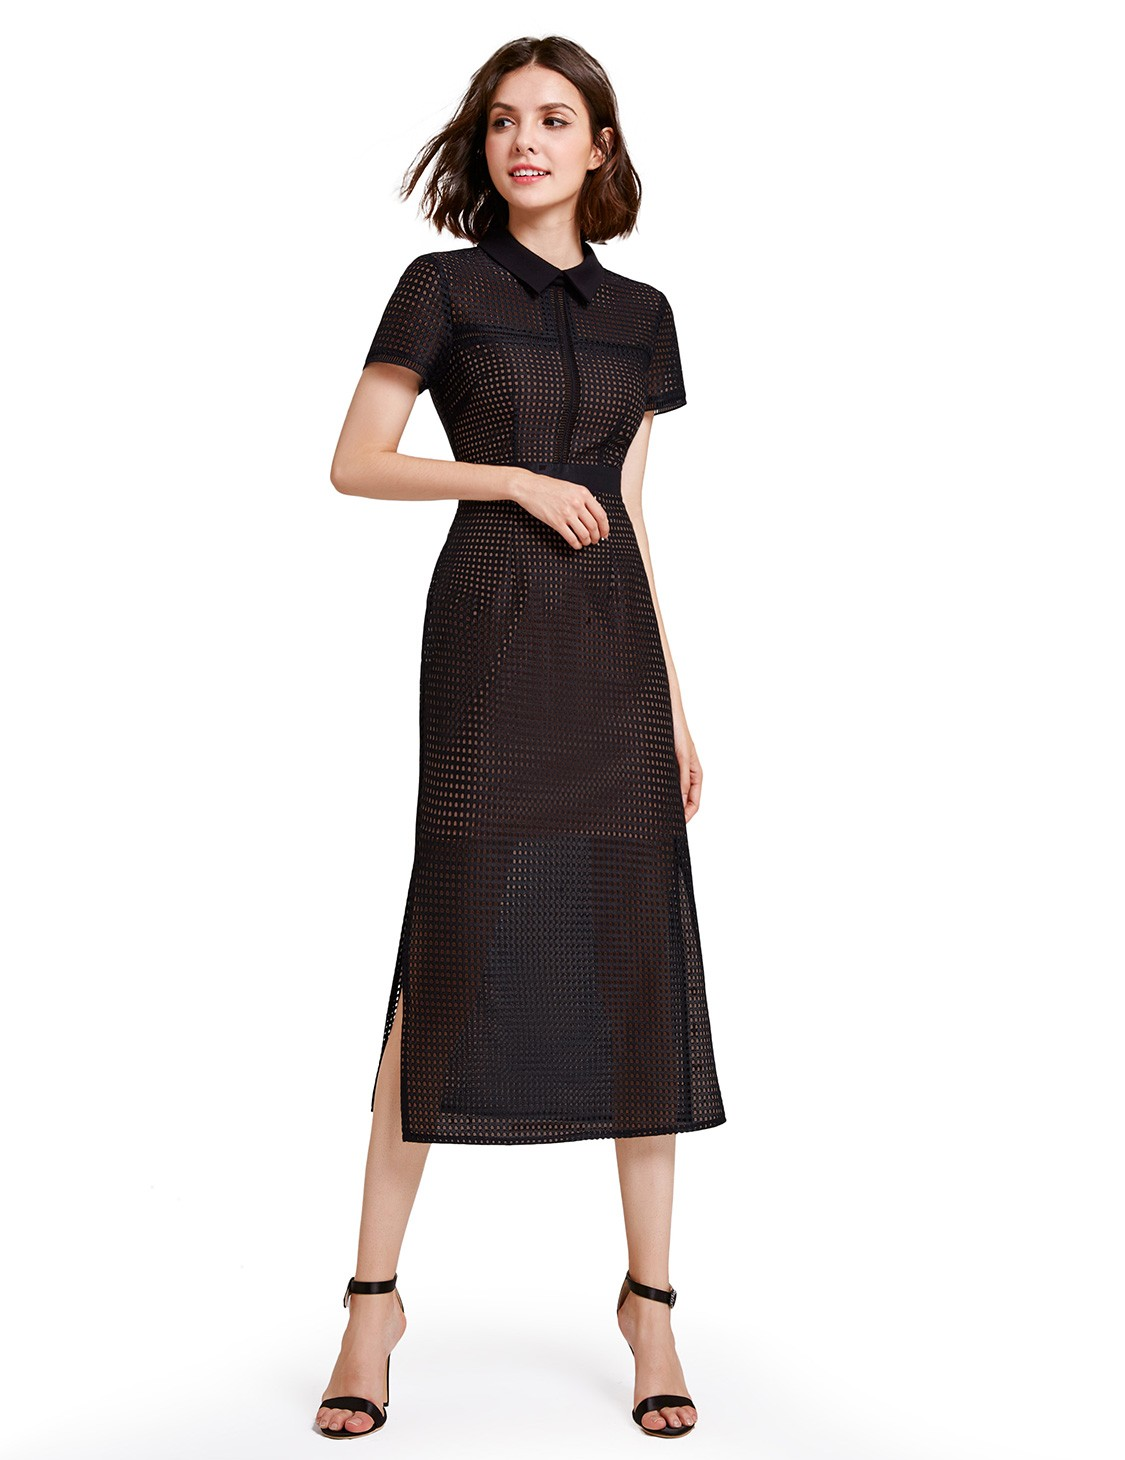 are dresses business casual photo - 1